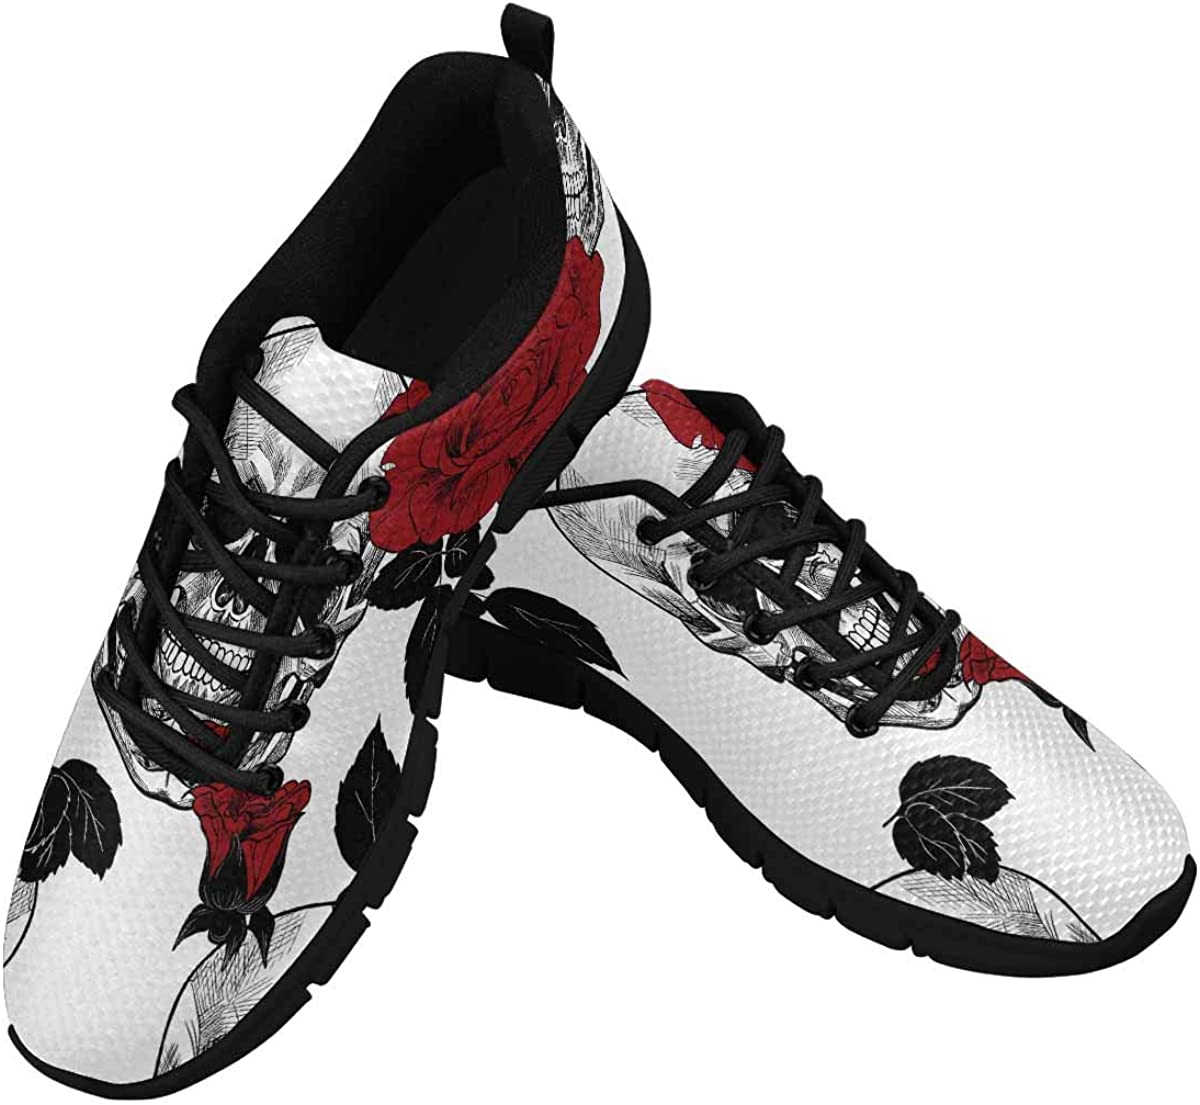 INTERESTPRINT Skull and Red Roses Pattern Women's Athletic Walking Shoes Breathe Comfort Mesh